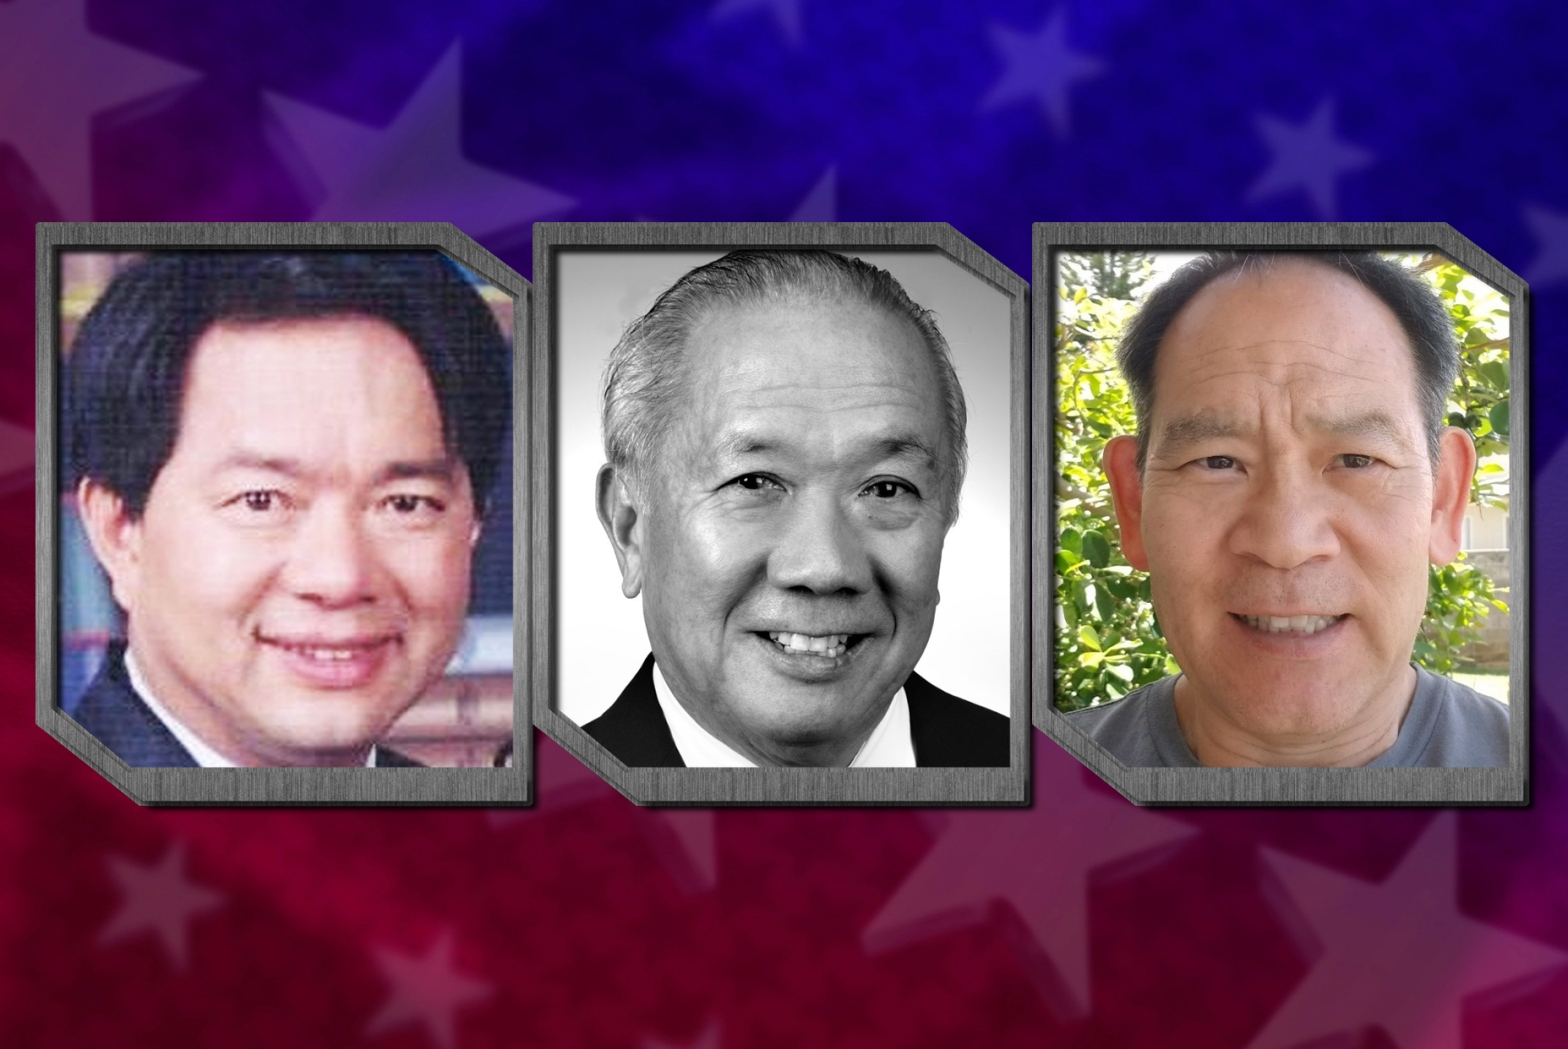 Calvin K.Y. Say will be on TV for a Candidates Forum for Honolulu City Council District 5 on the show Insights on PBS Hawaiʻi set for Thursday July 2, 2020 from 8:00 P.M.